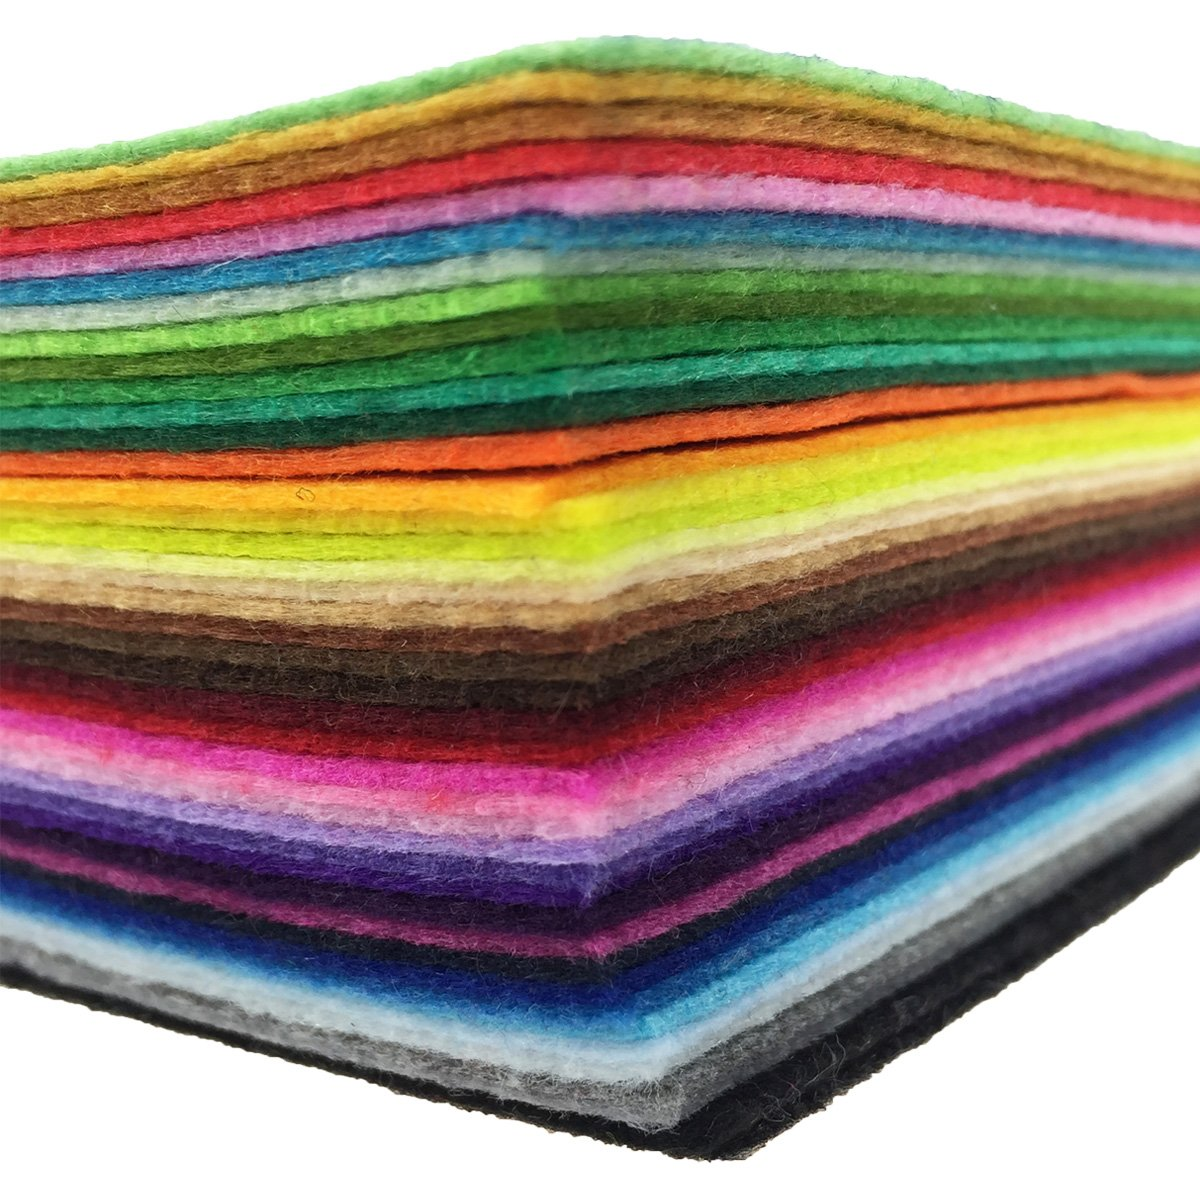 flic-flac 42pcs 12 x 12 inches (30cm30cm) Felt Fabric Sheet Assorted Color Felt Pack DIY Craft Squares Nonwoven by flic-flac (Image #3)